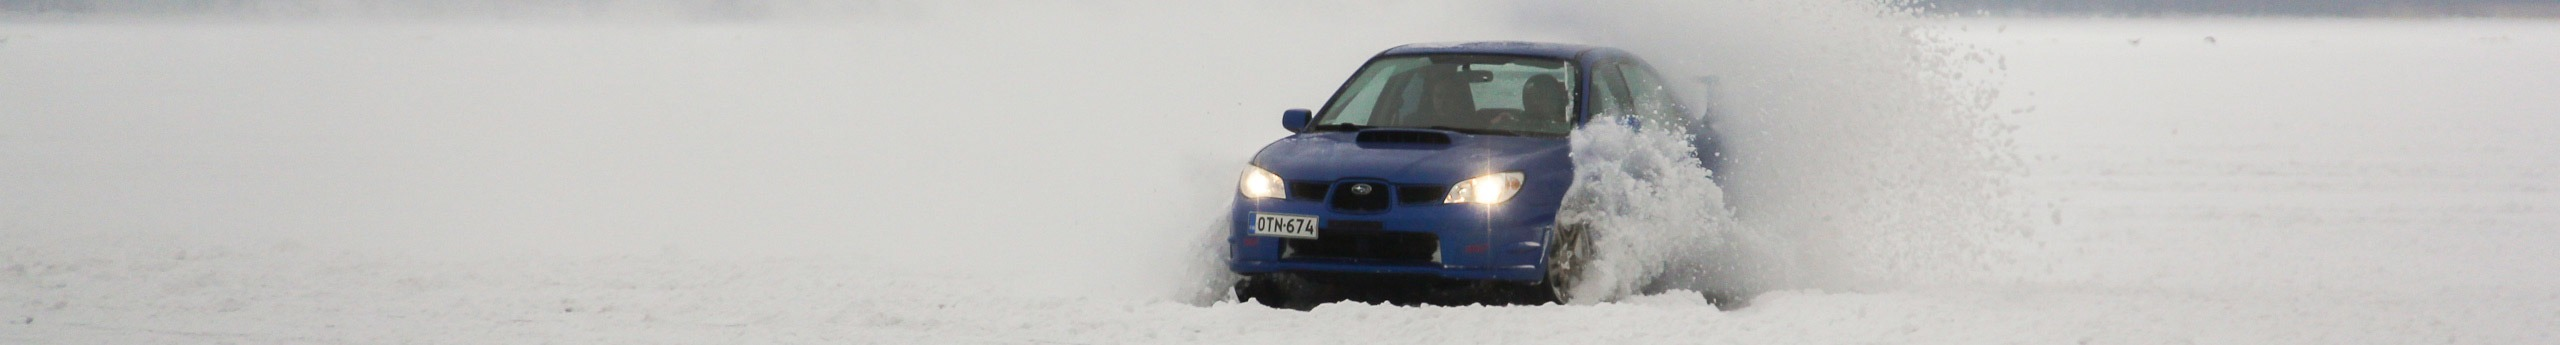 subaru-on-ice-karuselli